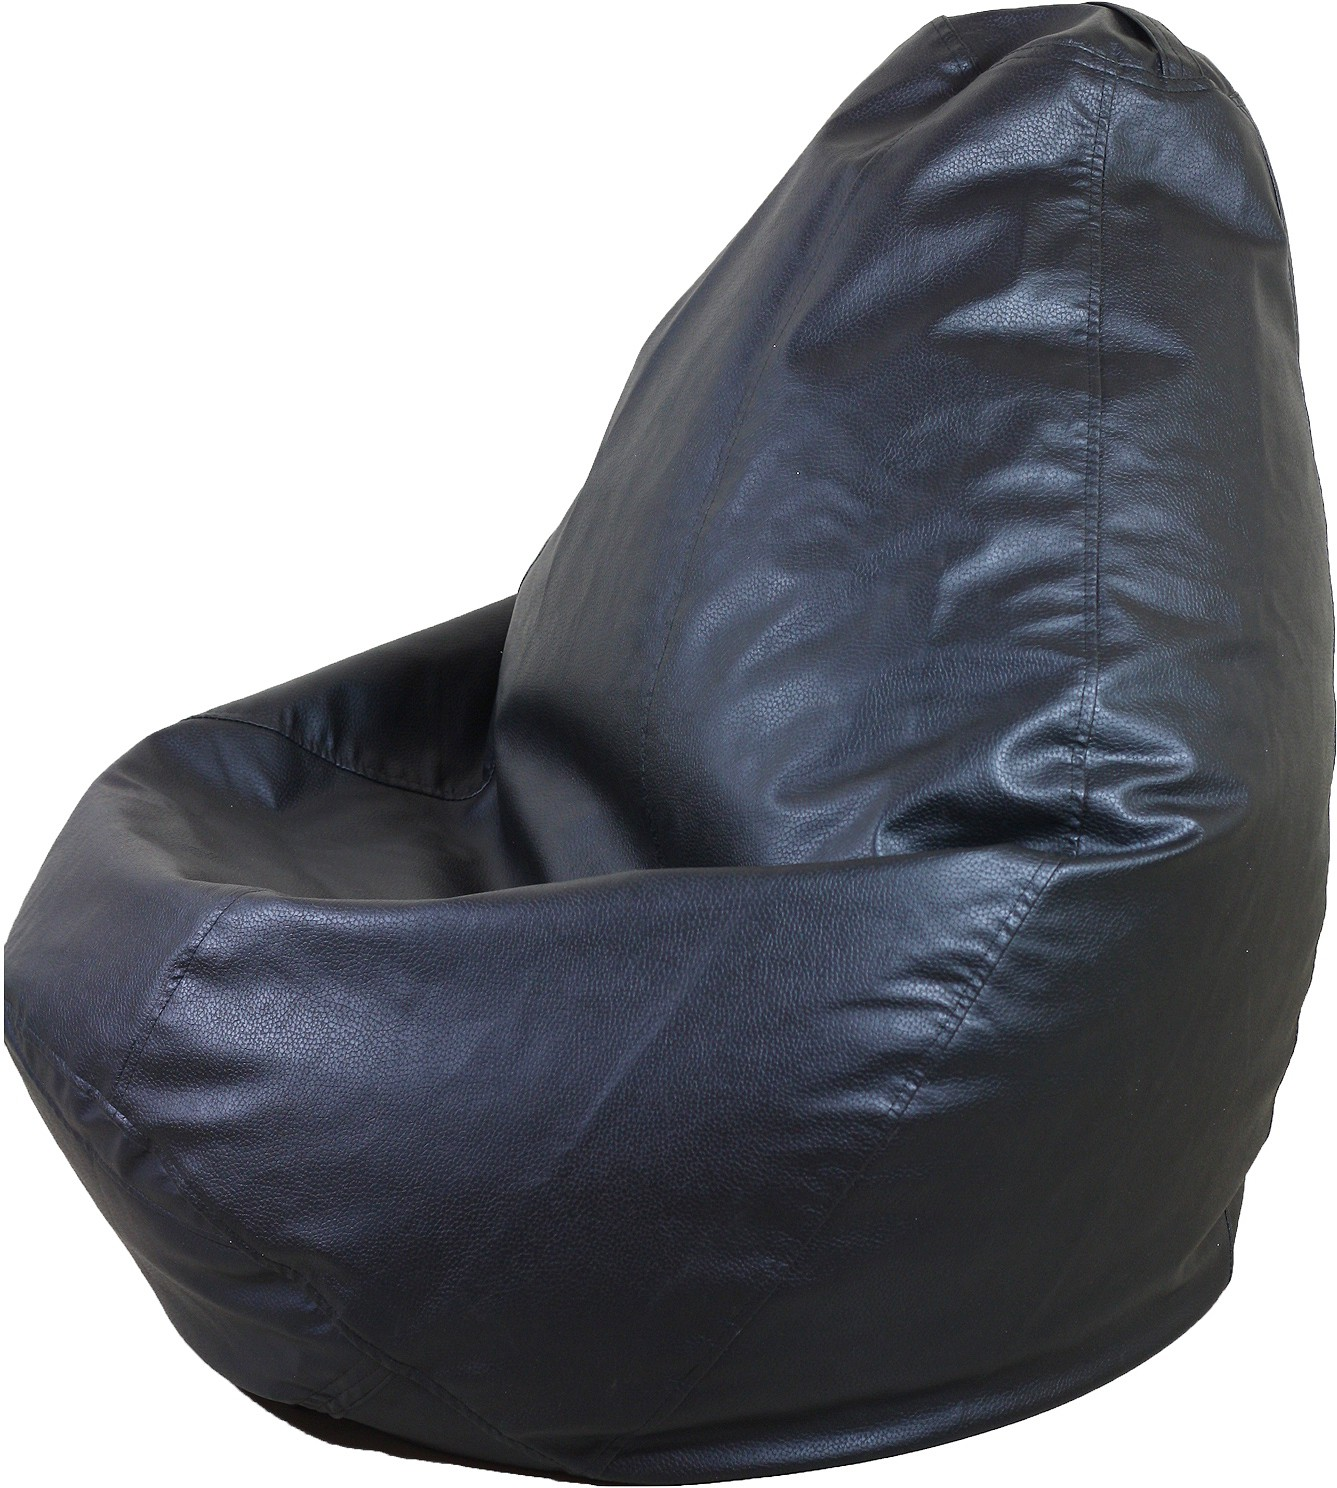 View Gabbroo XXL Bean Bag  With Bean Filling(Black) Furniture (Gabbroo)